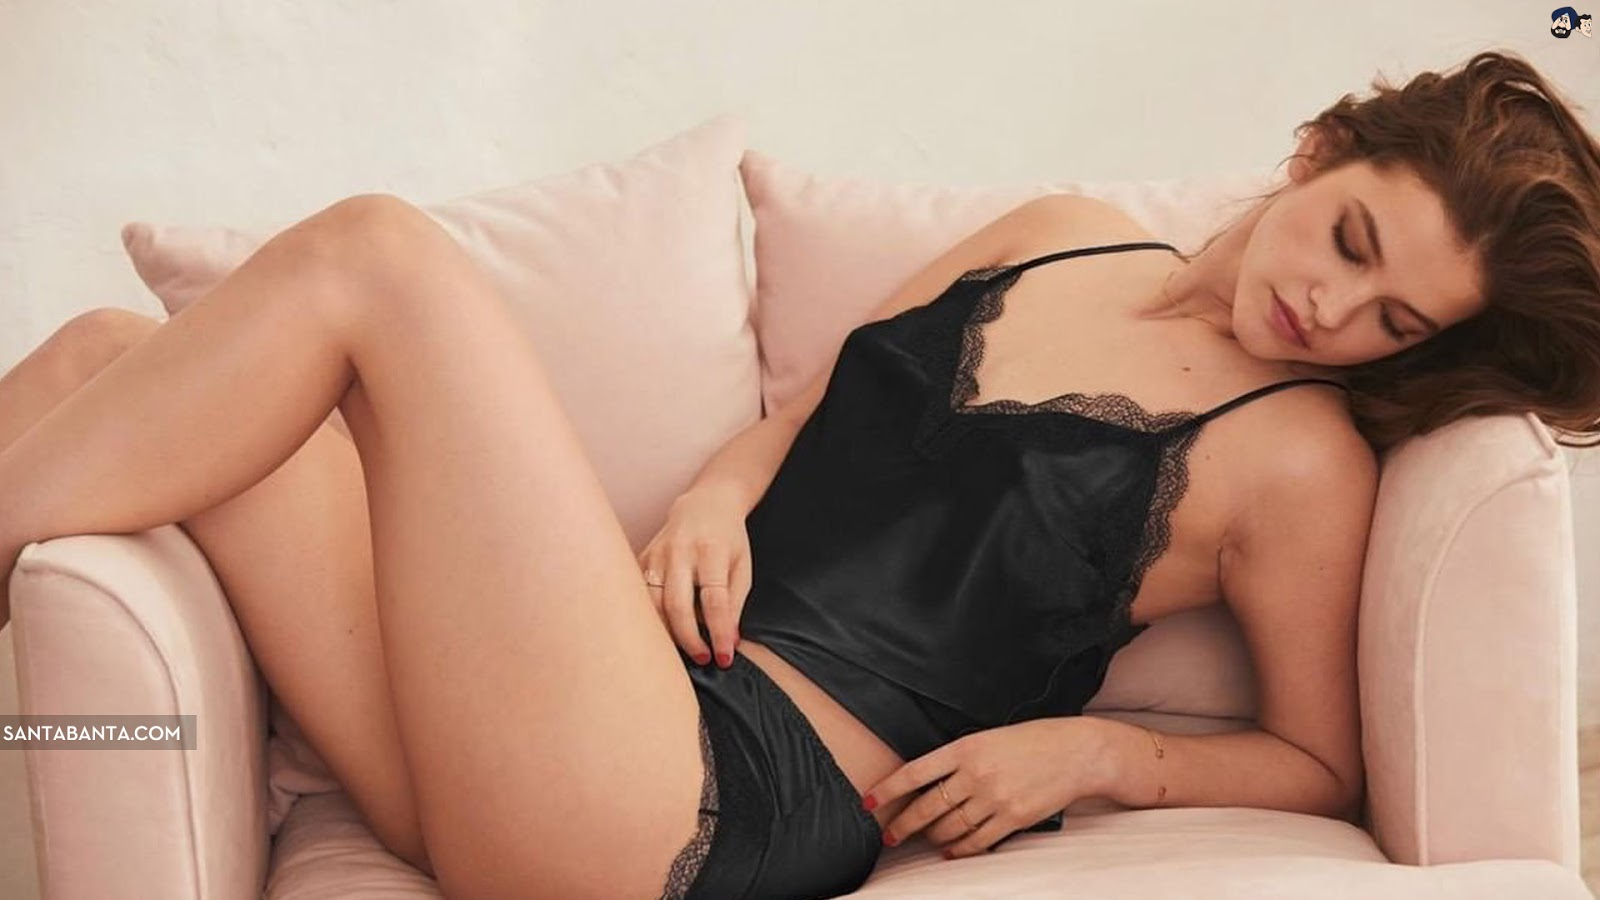 Barbara Palvin Sexy Black Lingerie Wallpaper